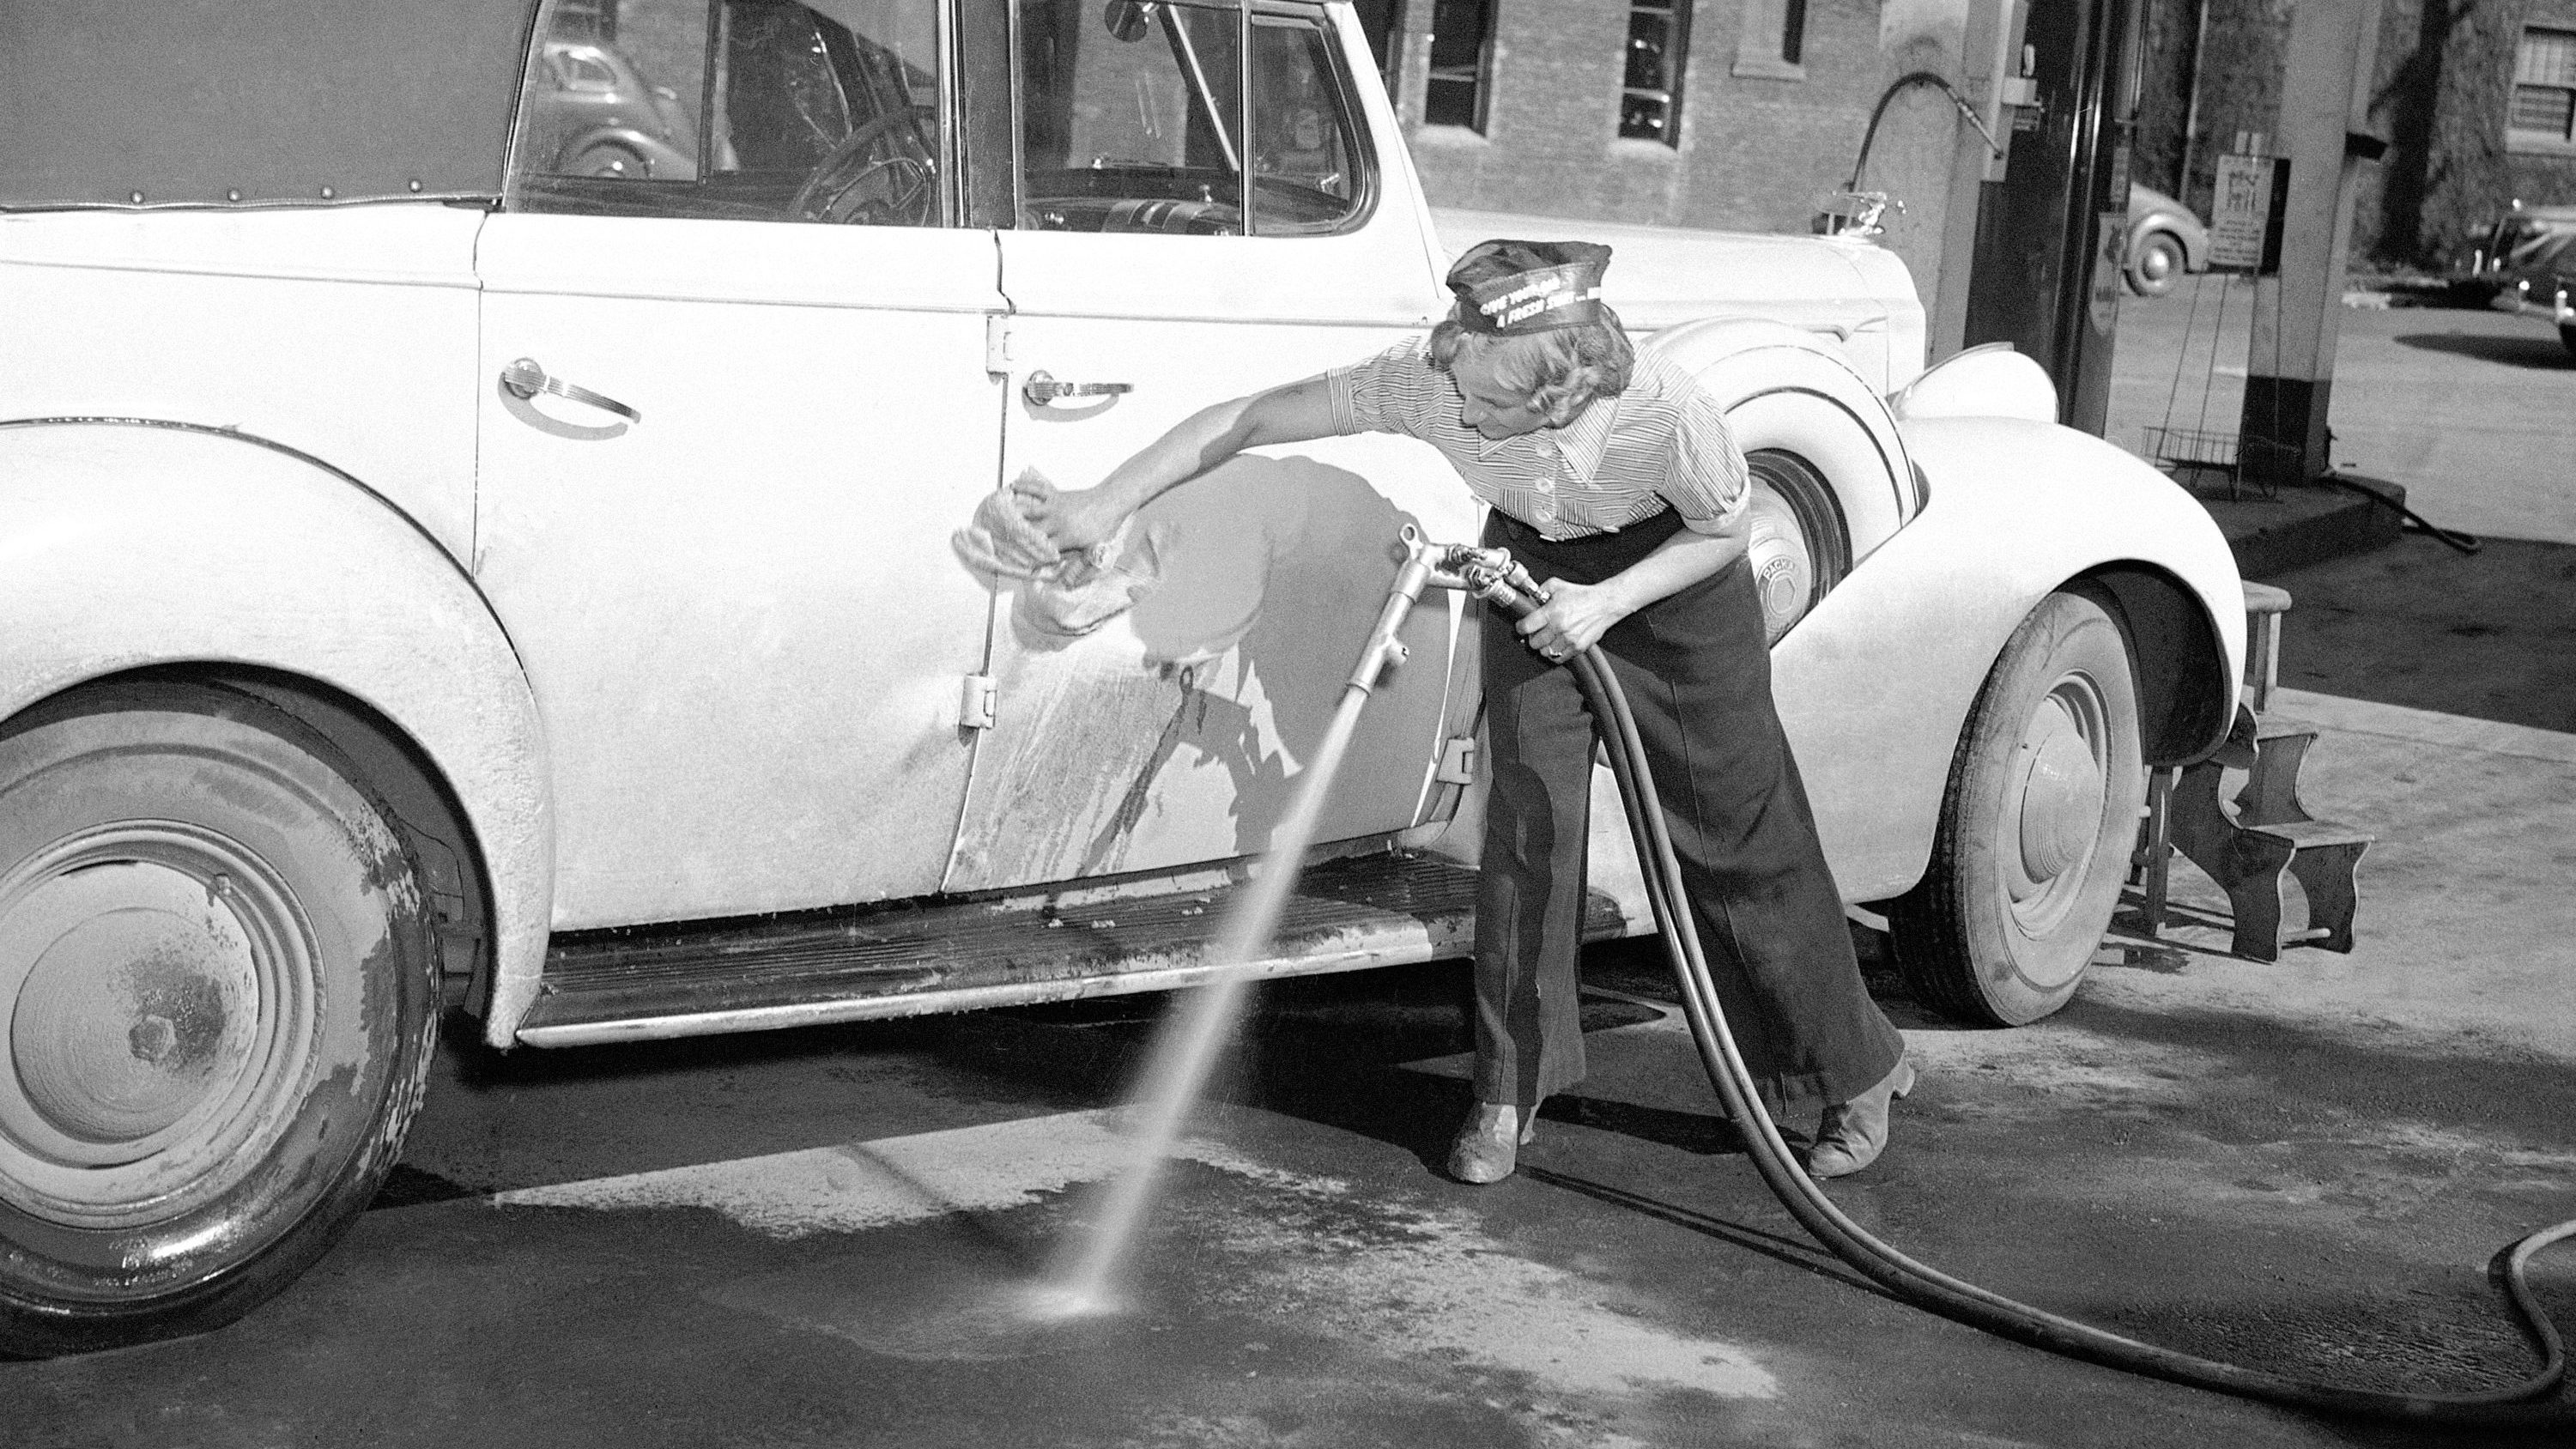 Labor shortage in Portland has caused women to take over certain jobs previously held by men. Gertrude Rutter is now a car-washer at a local gasoline station in Portland, Oregon, April 3, 1942. (AP Photo)